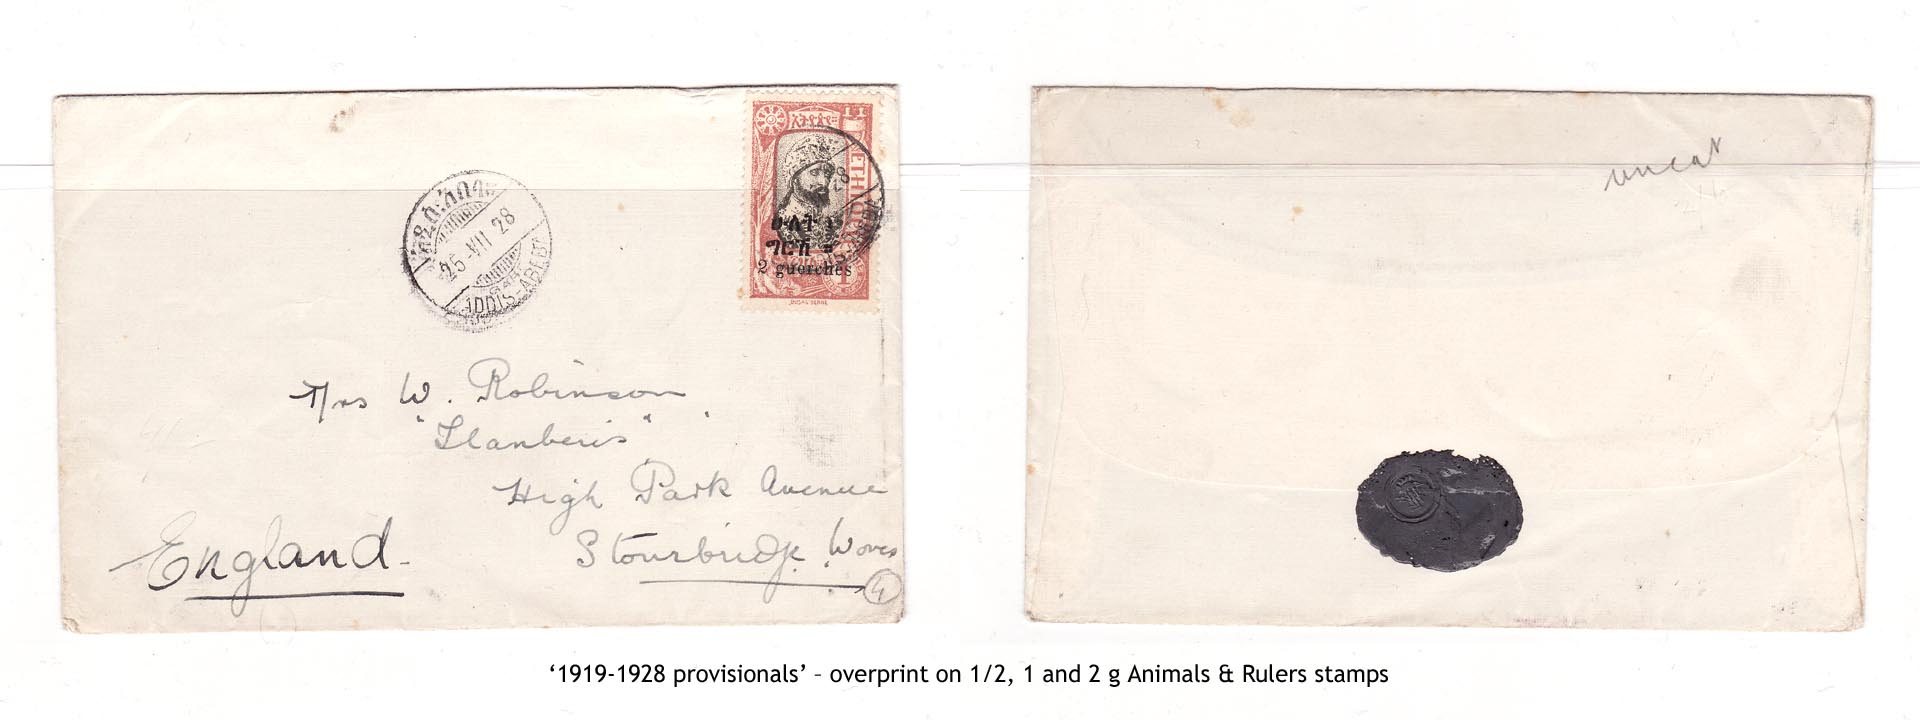 1919-1928 provisionals' – overprint on 1-2, 1 and 2 g Animals & Rulers stamps